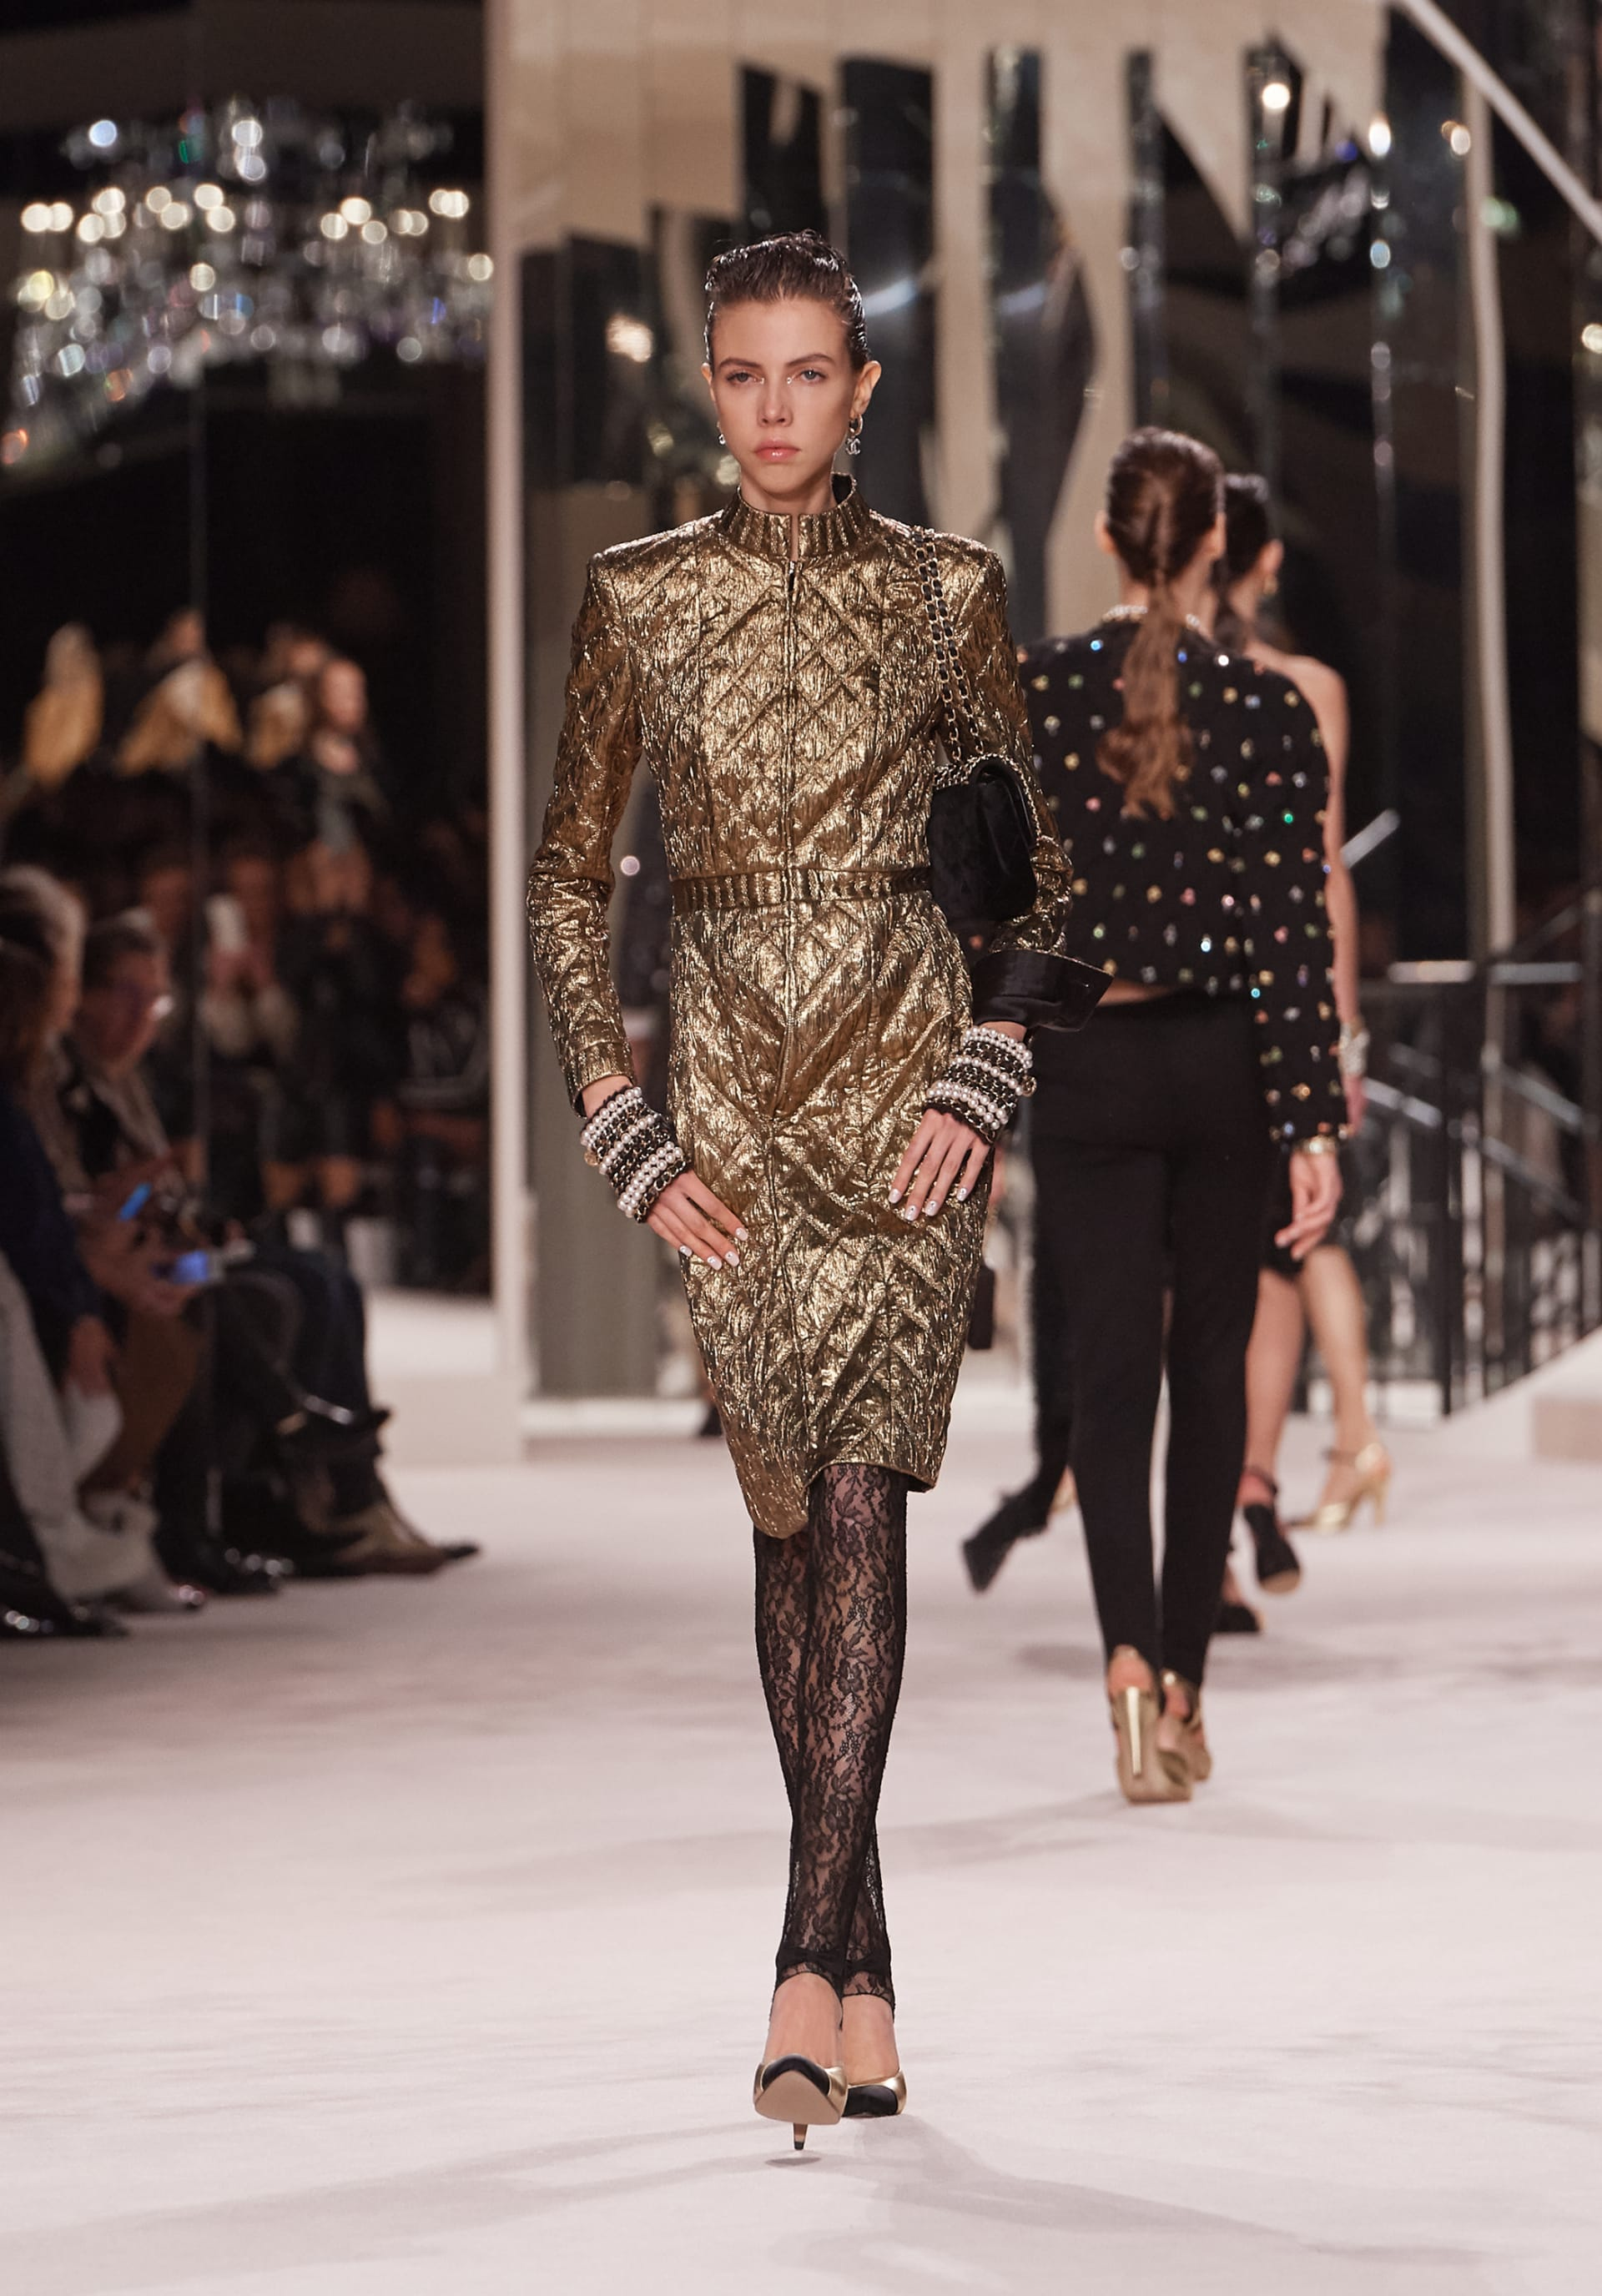 View 1 - Look 51 - Métiers d'Art 2019/20 - see full sized version